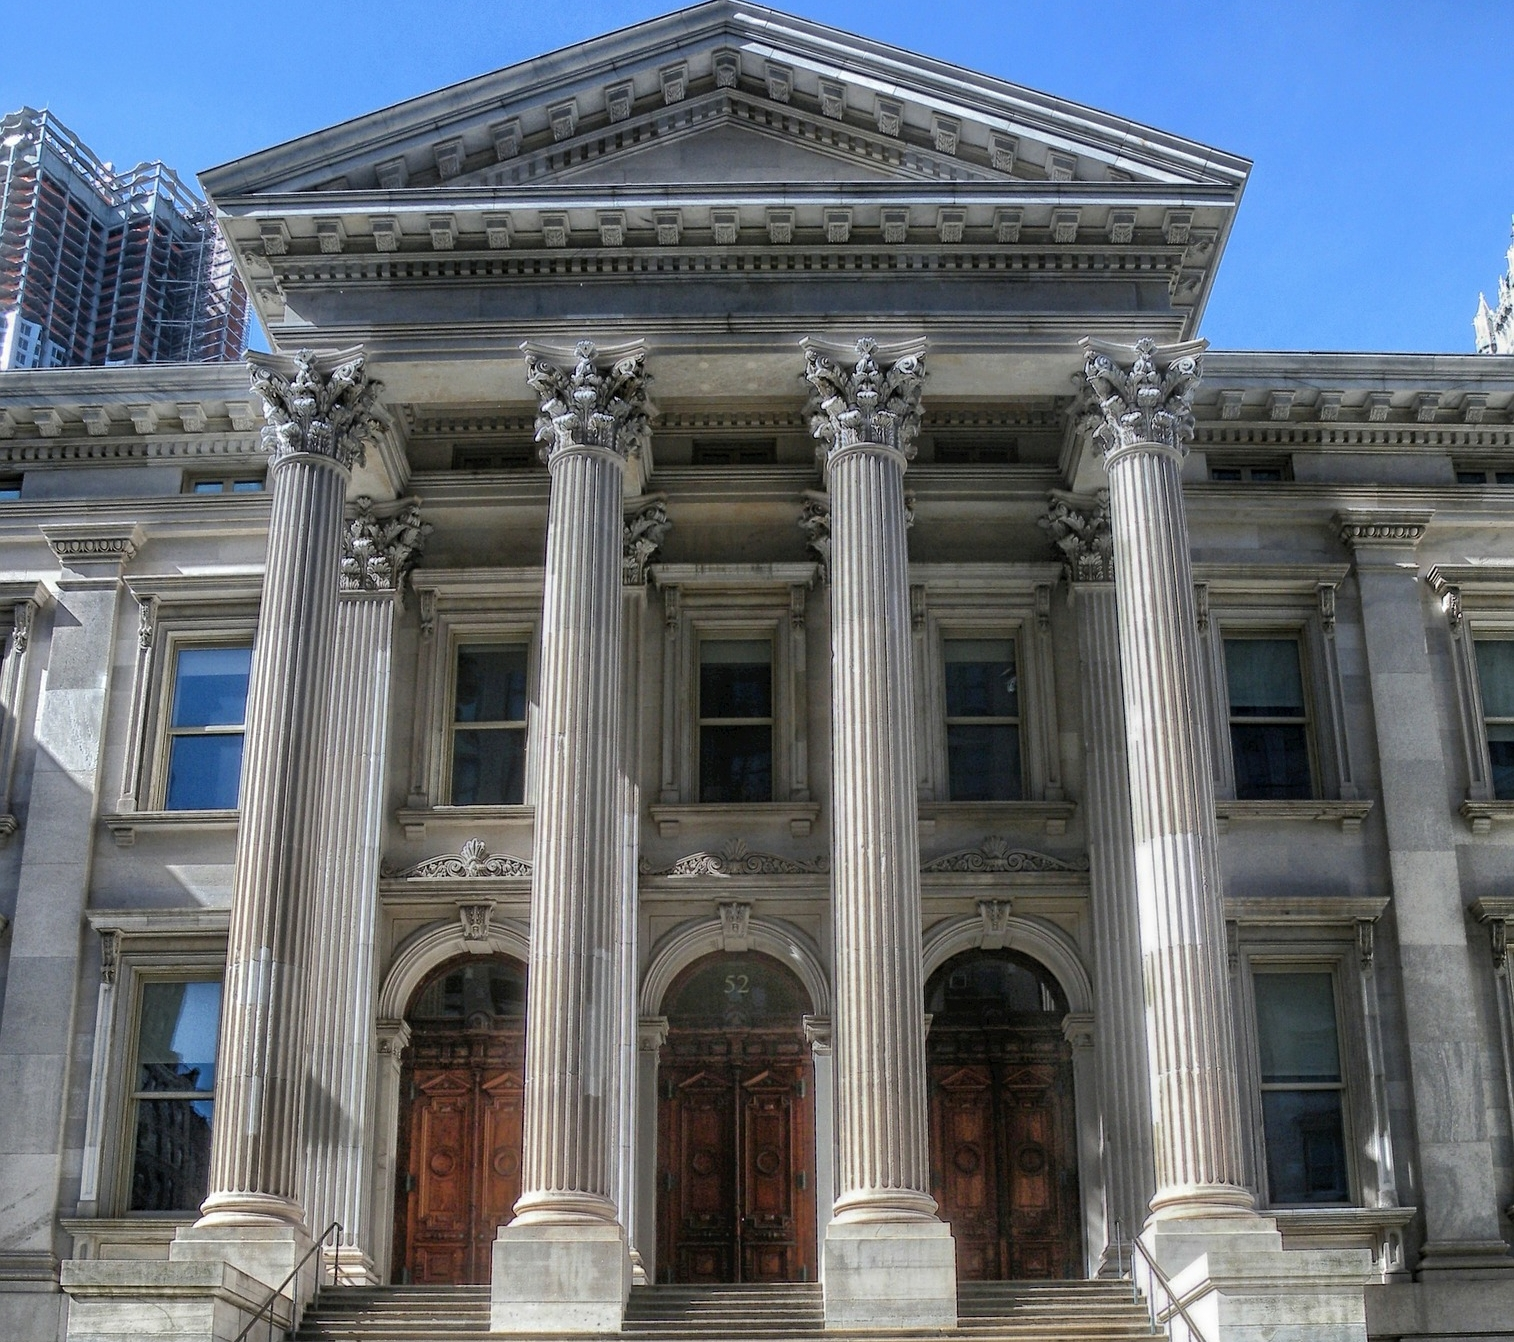 Stately looking stone building with four large stone columns.